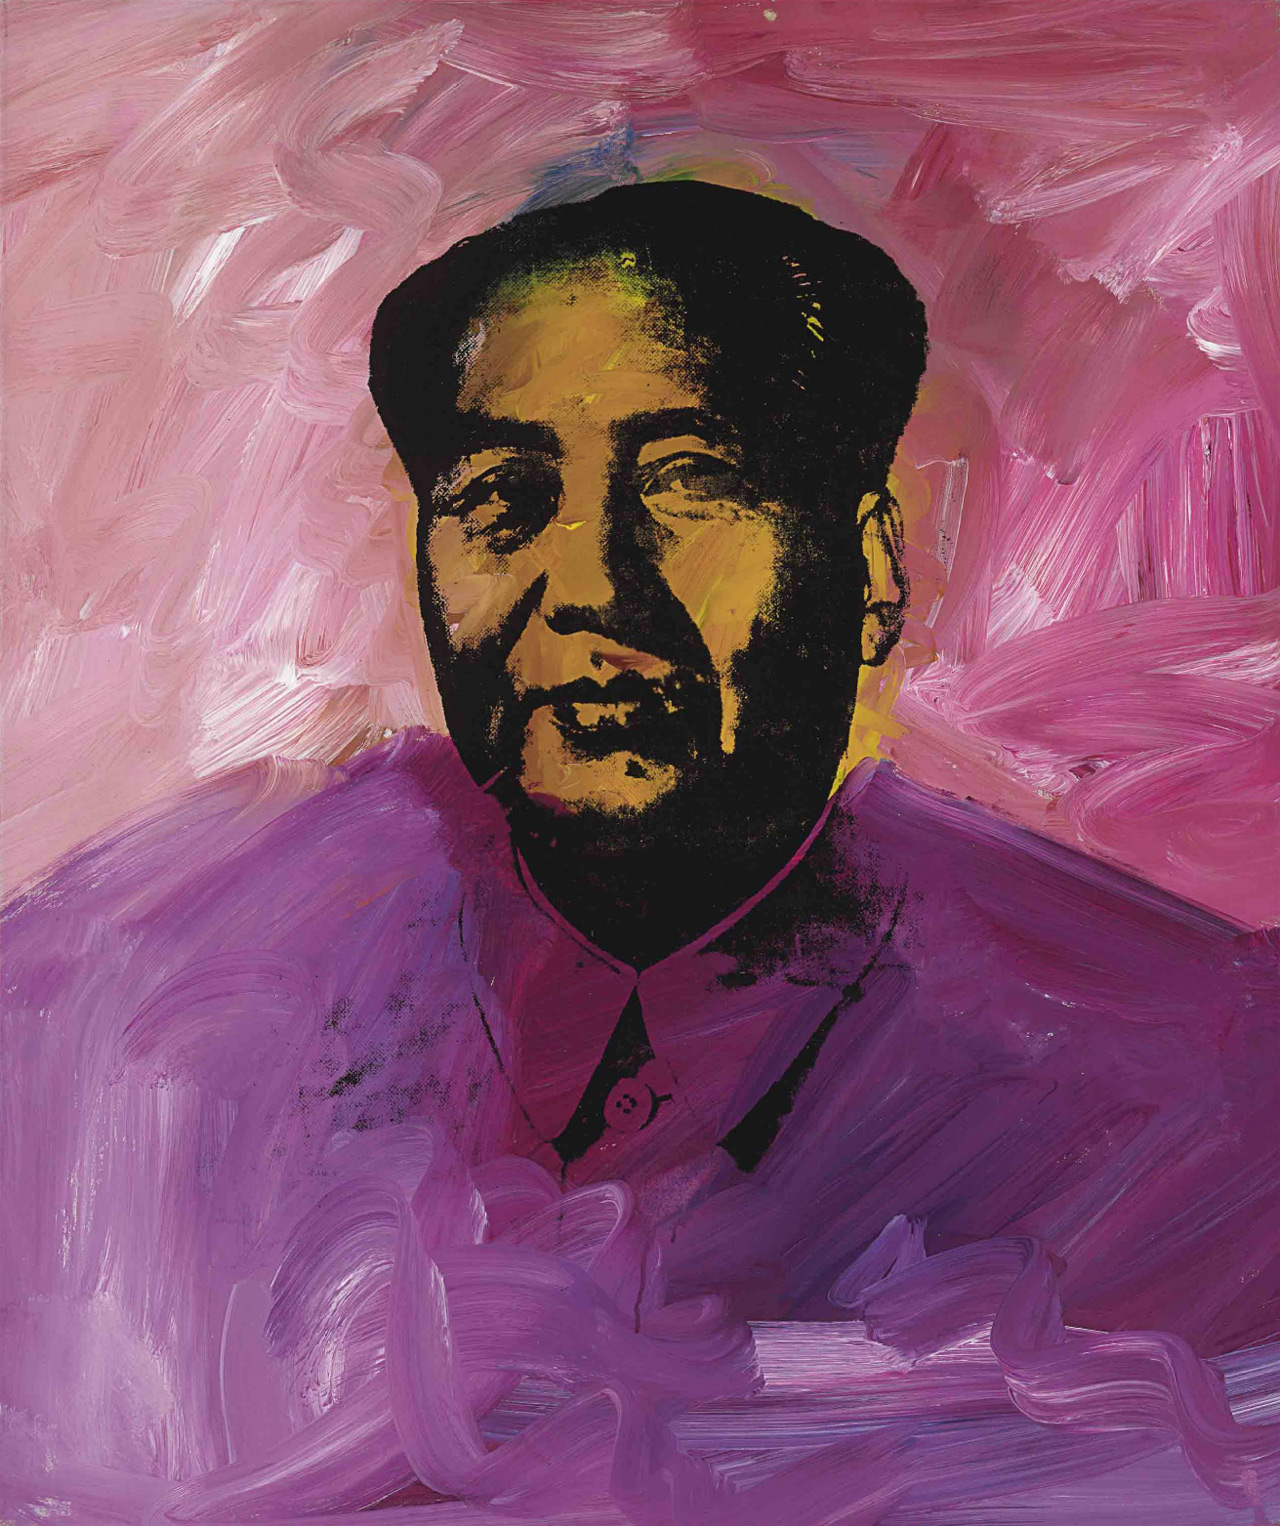 Andy Warhol's Mao